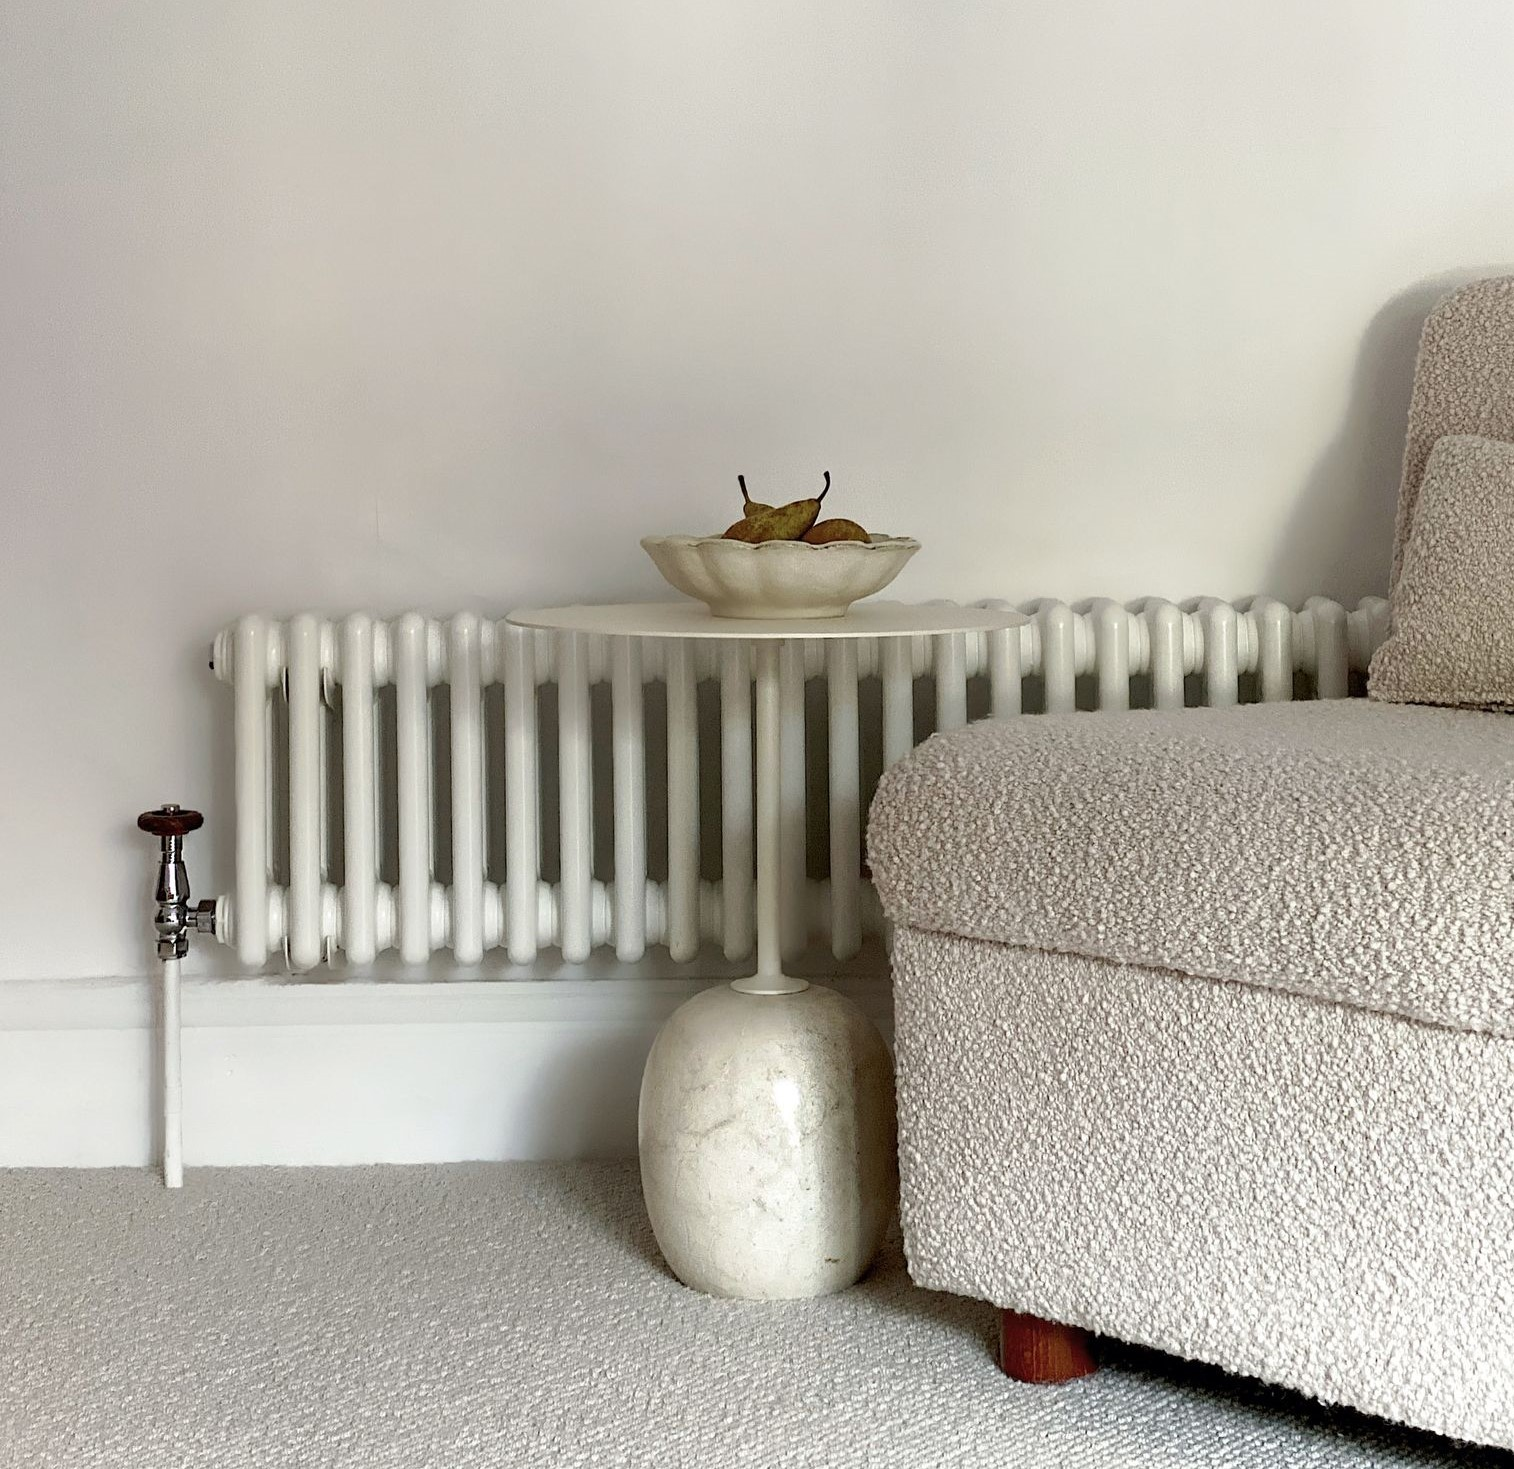 Donna's living room radiator